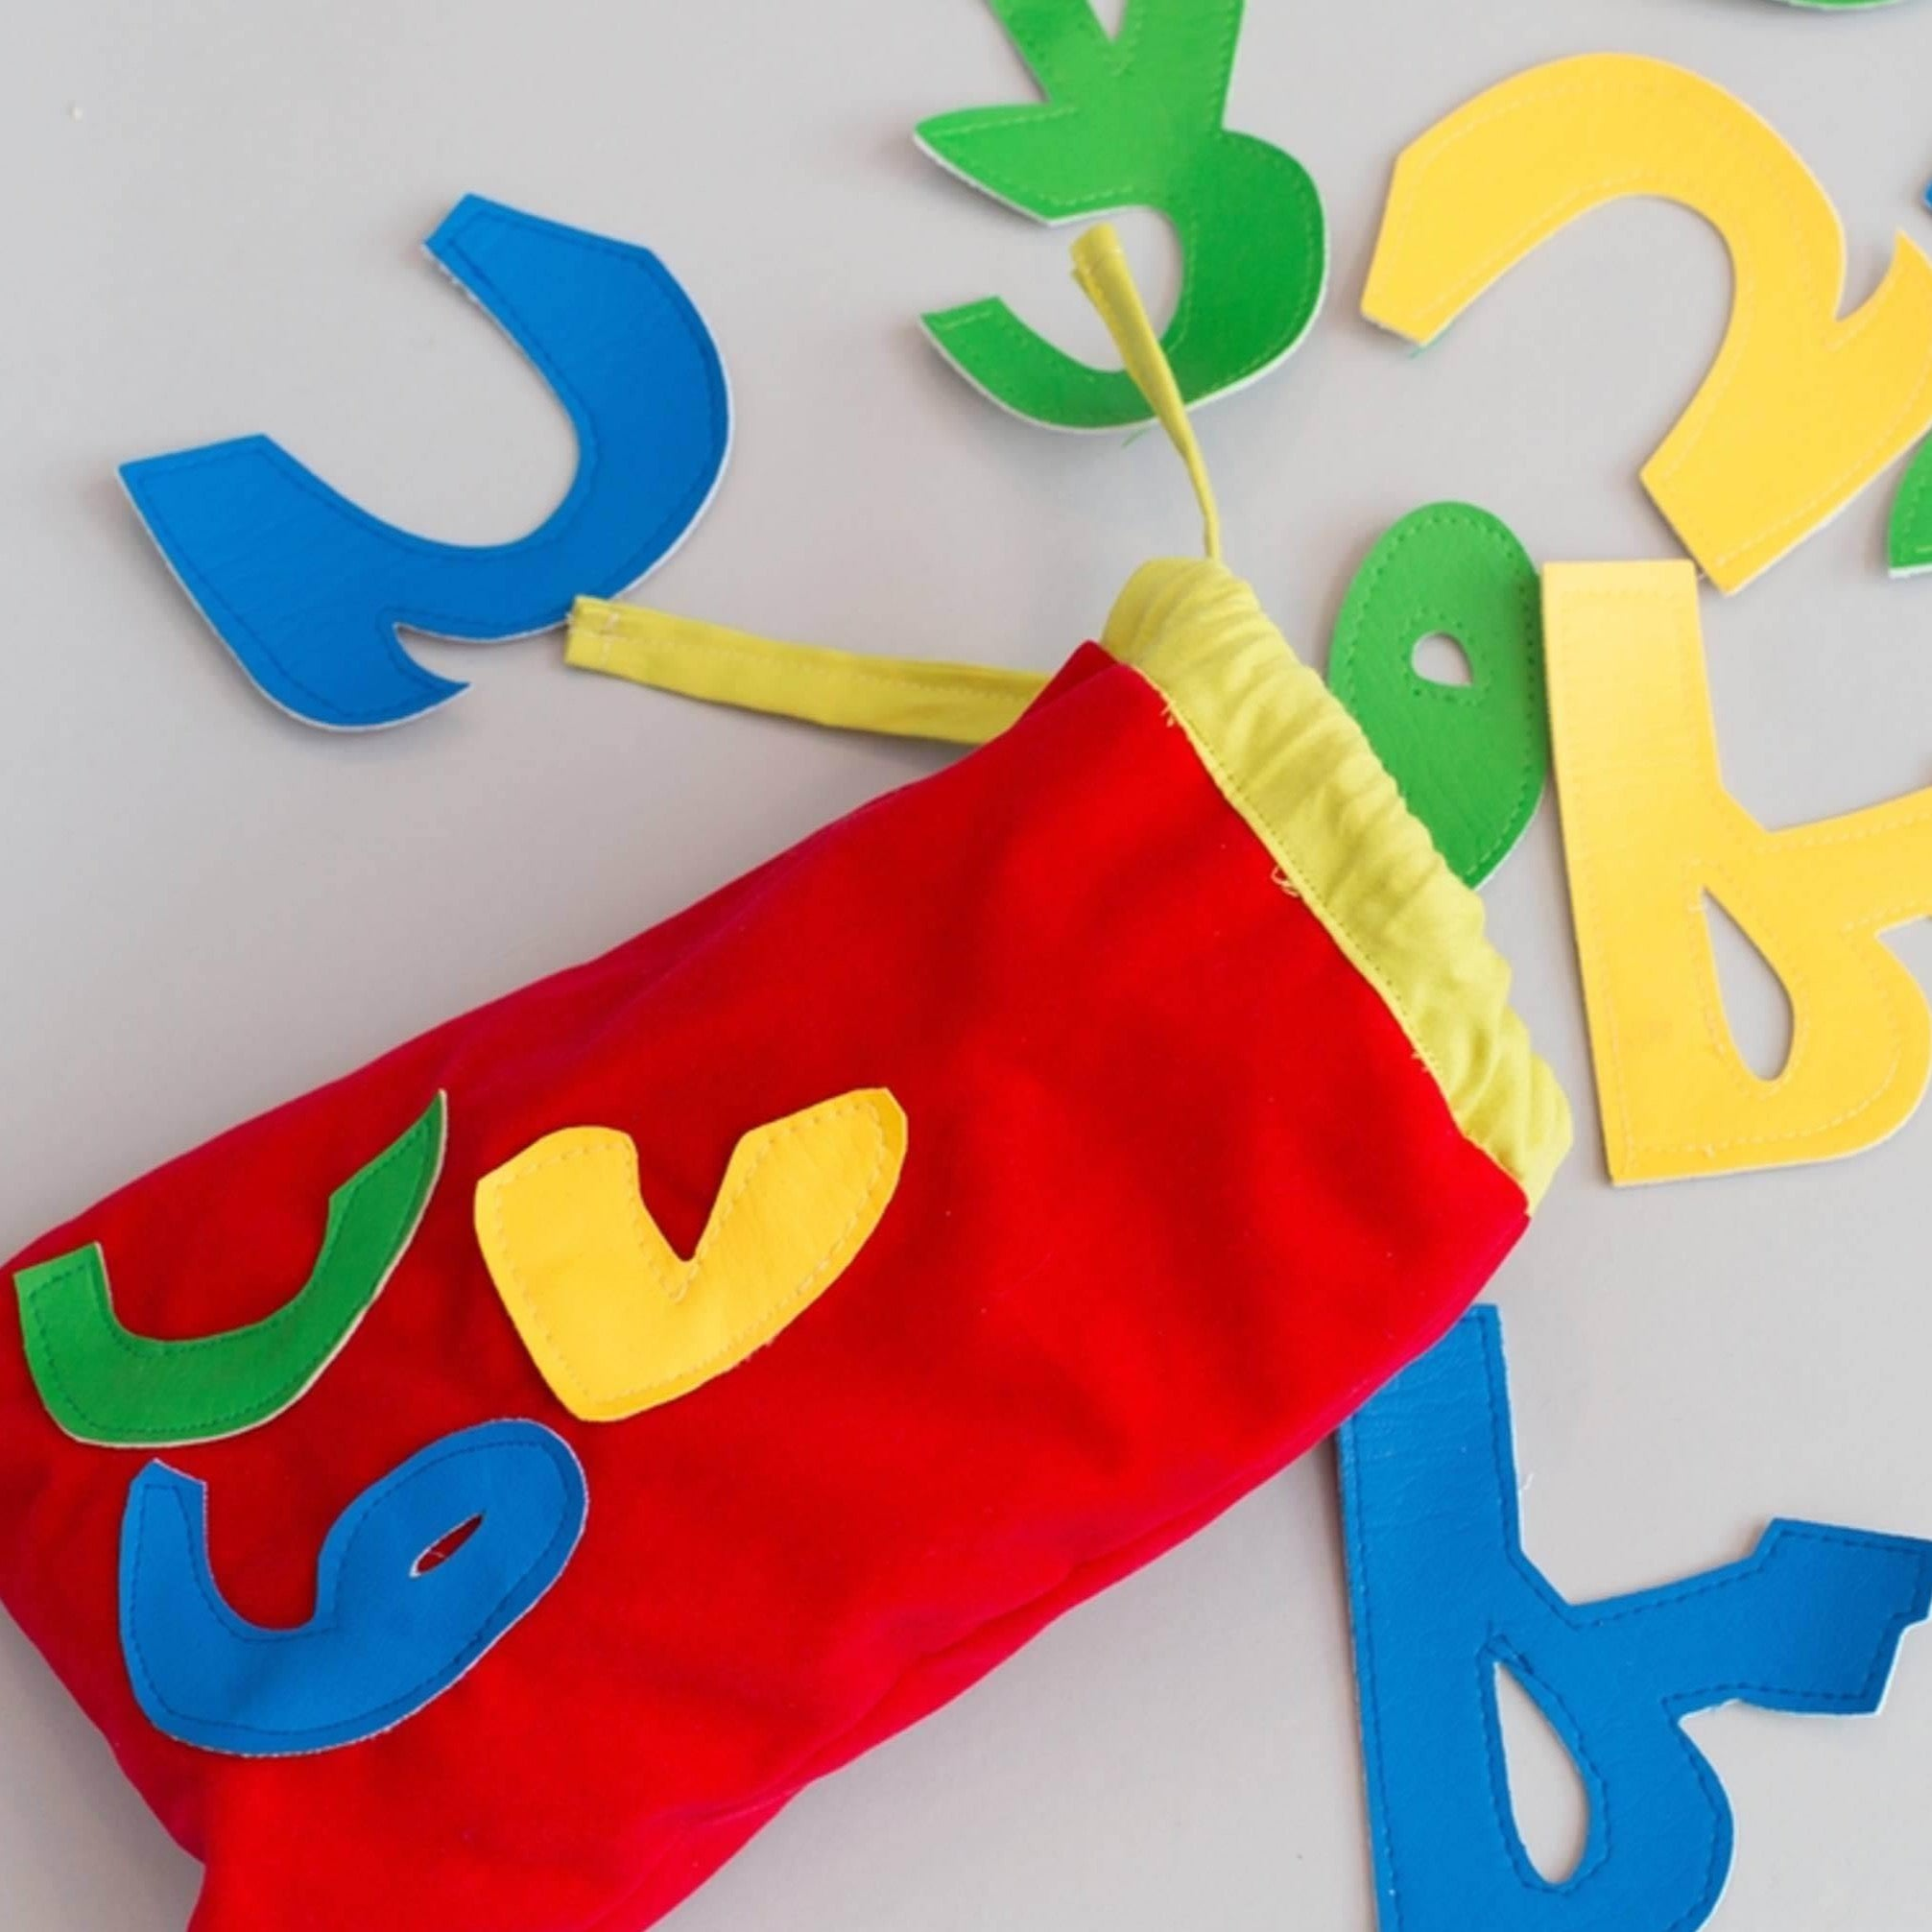 Arabic alphabet toy for kids learning Arabic letters – Zeki